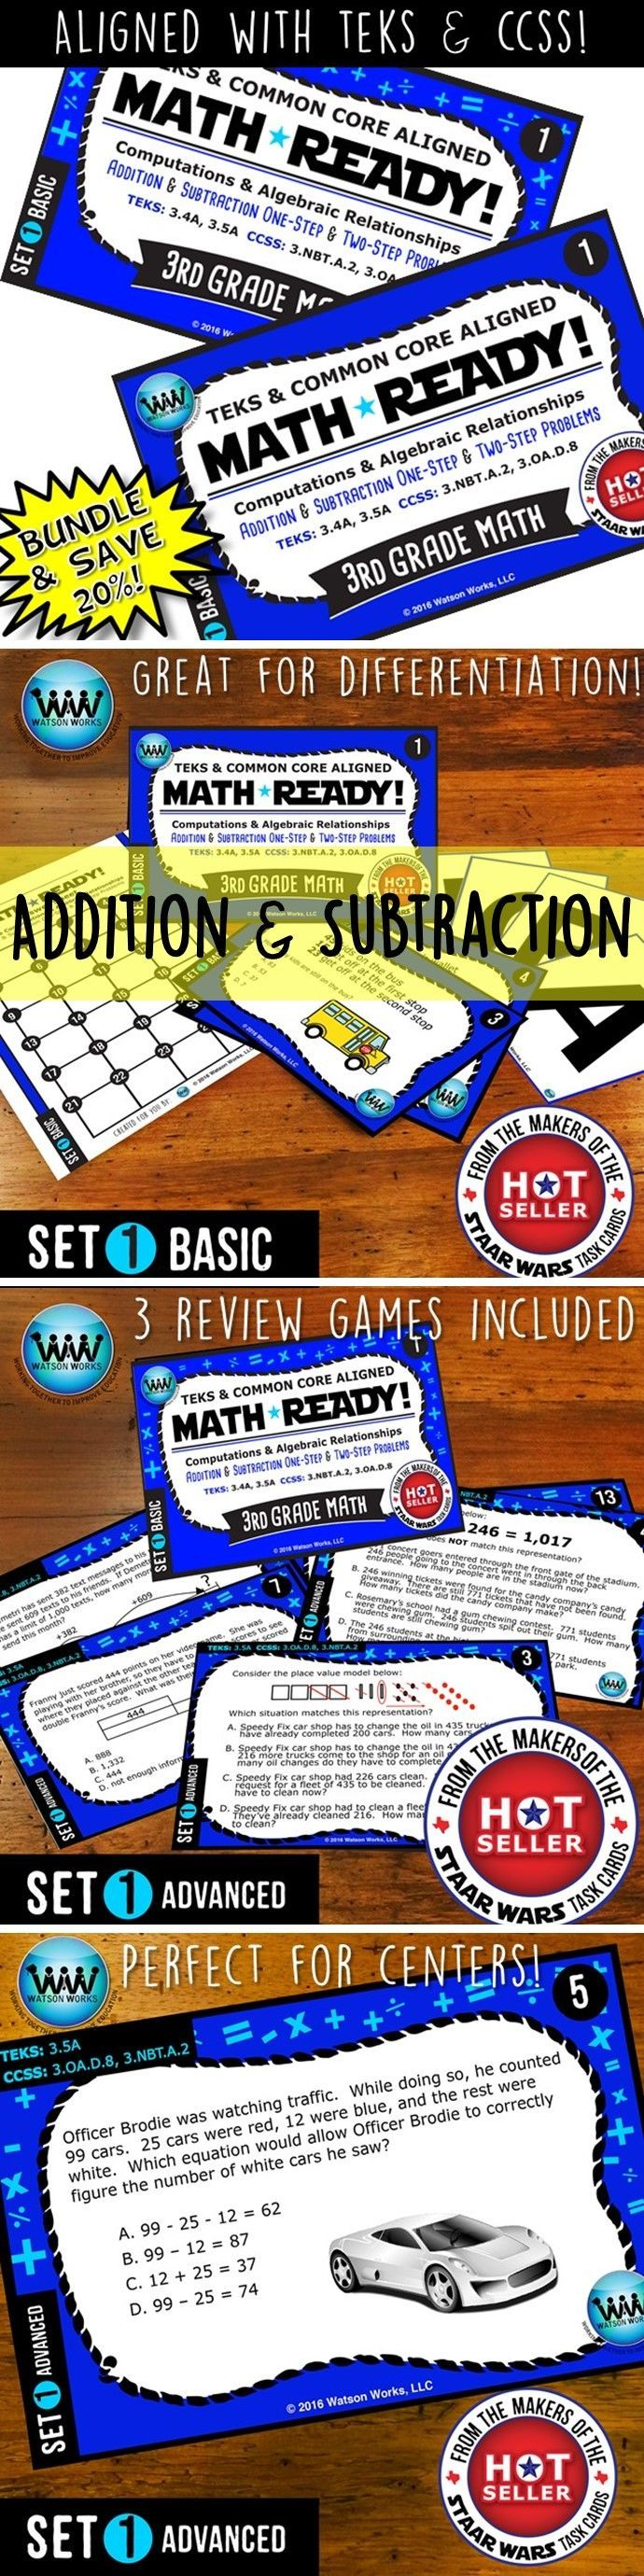 SAVE 20% WHEN YOU PURCHASE THIS BUNDLE (includes both our Basic & Advanced MATH READY Addition & Subtraction 1-Step & 2-Step Problems Task Cards sets)! Both sets include 24 task cards w/ multiple choice answers. The BASIC set helps your students practice & apply their understanding of addition/subtraction at a simpler, basic level with shorter questions, while the ADVANCED set features rigorous, higher-level thinking questions w/ longer word problems, making them great for differentiation…